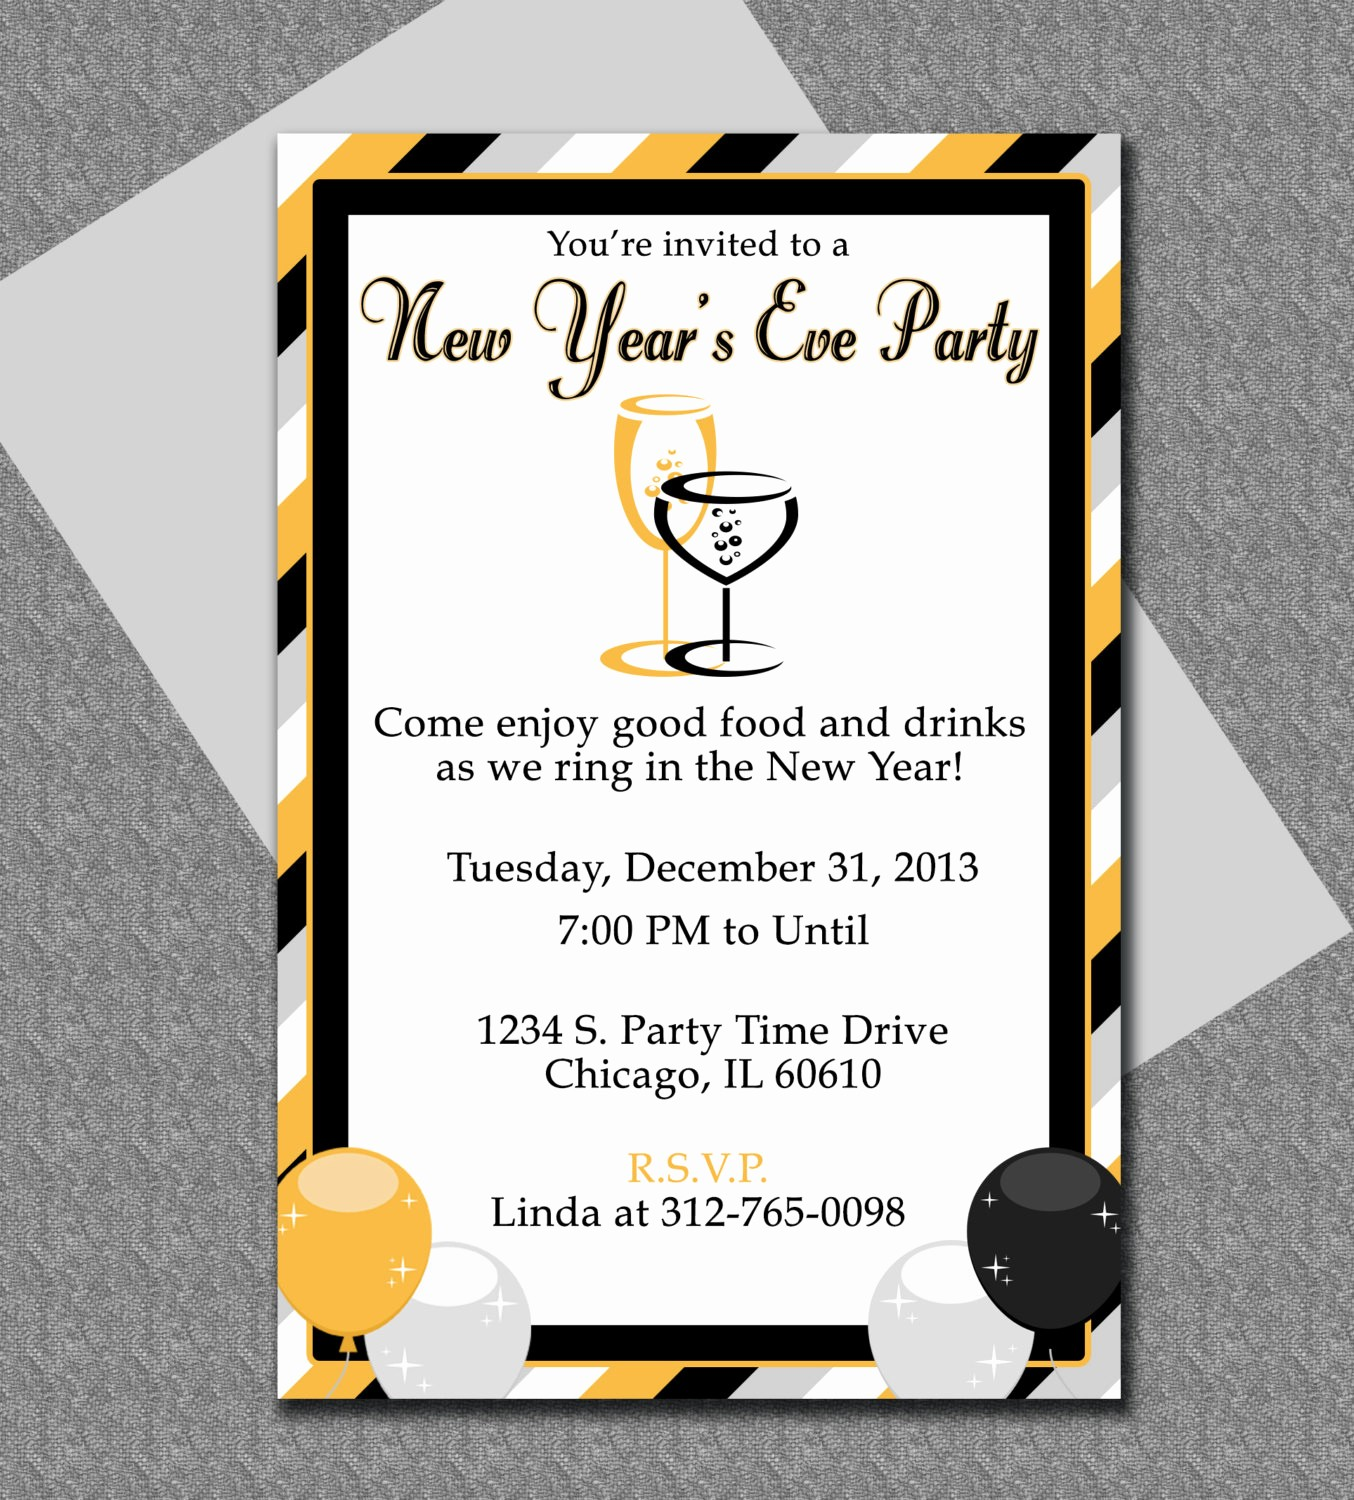 New Years Eve Menu Template Beautiful New Years Eve Party Invitation Editable Template